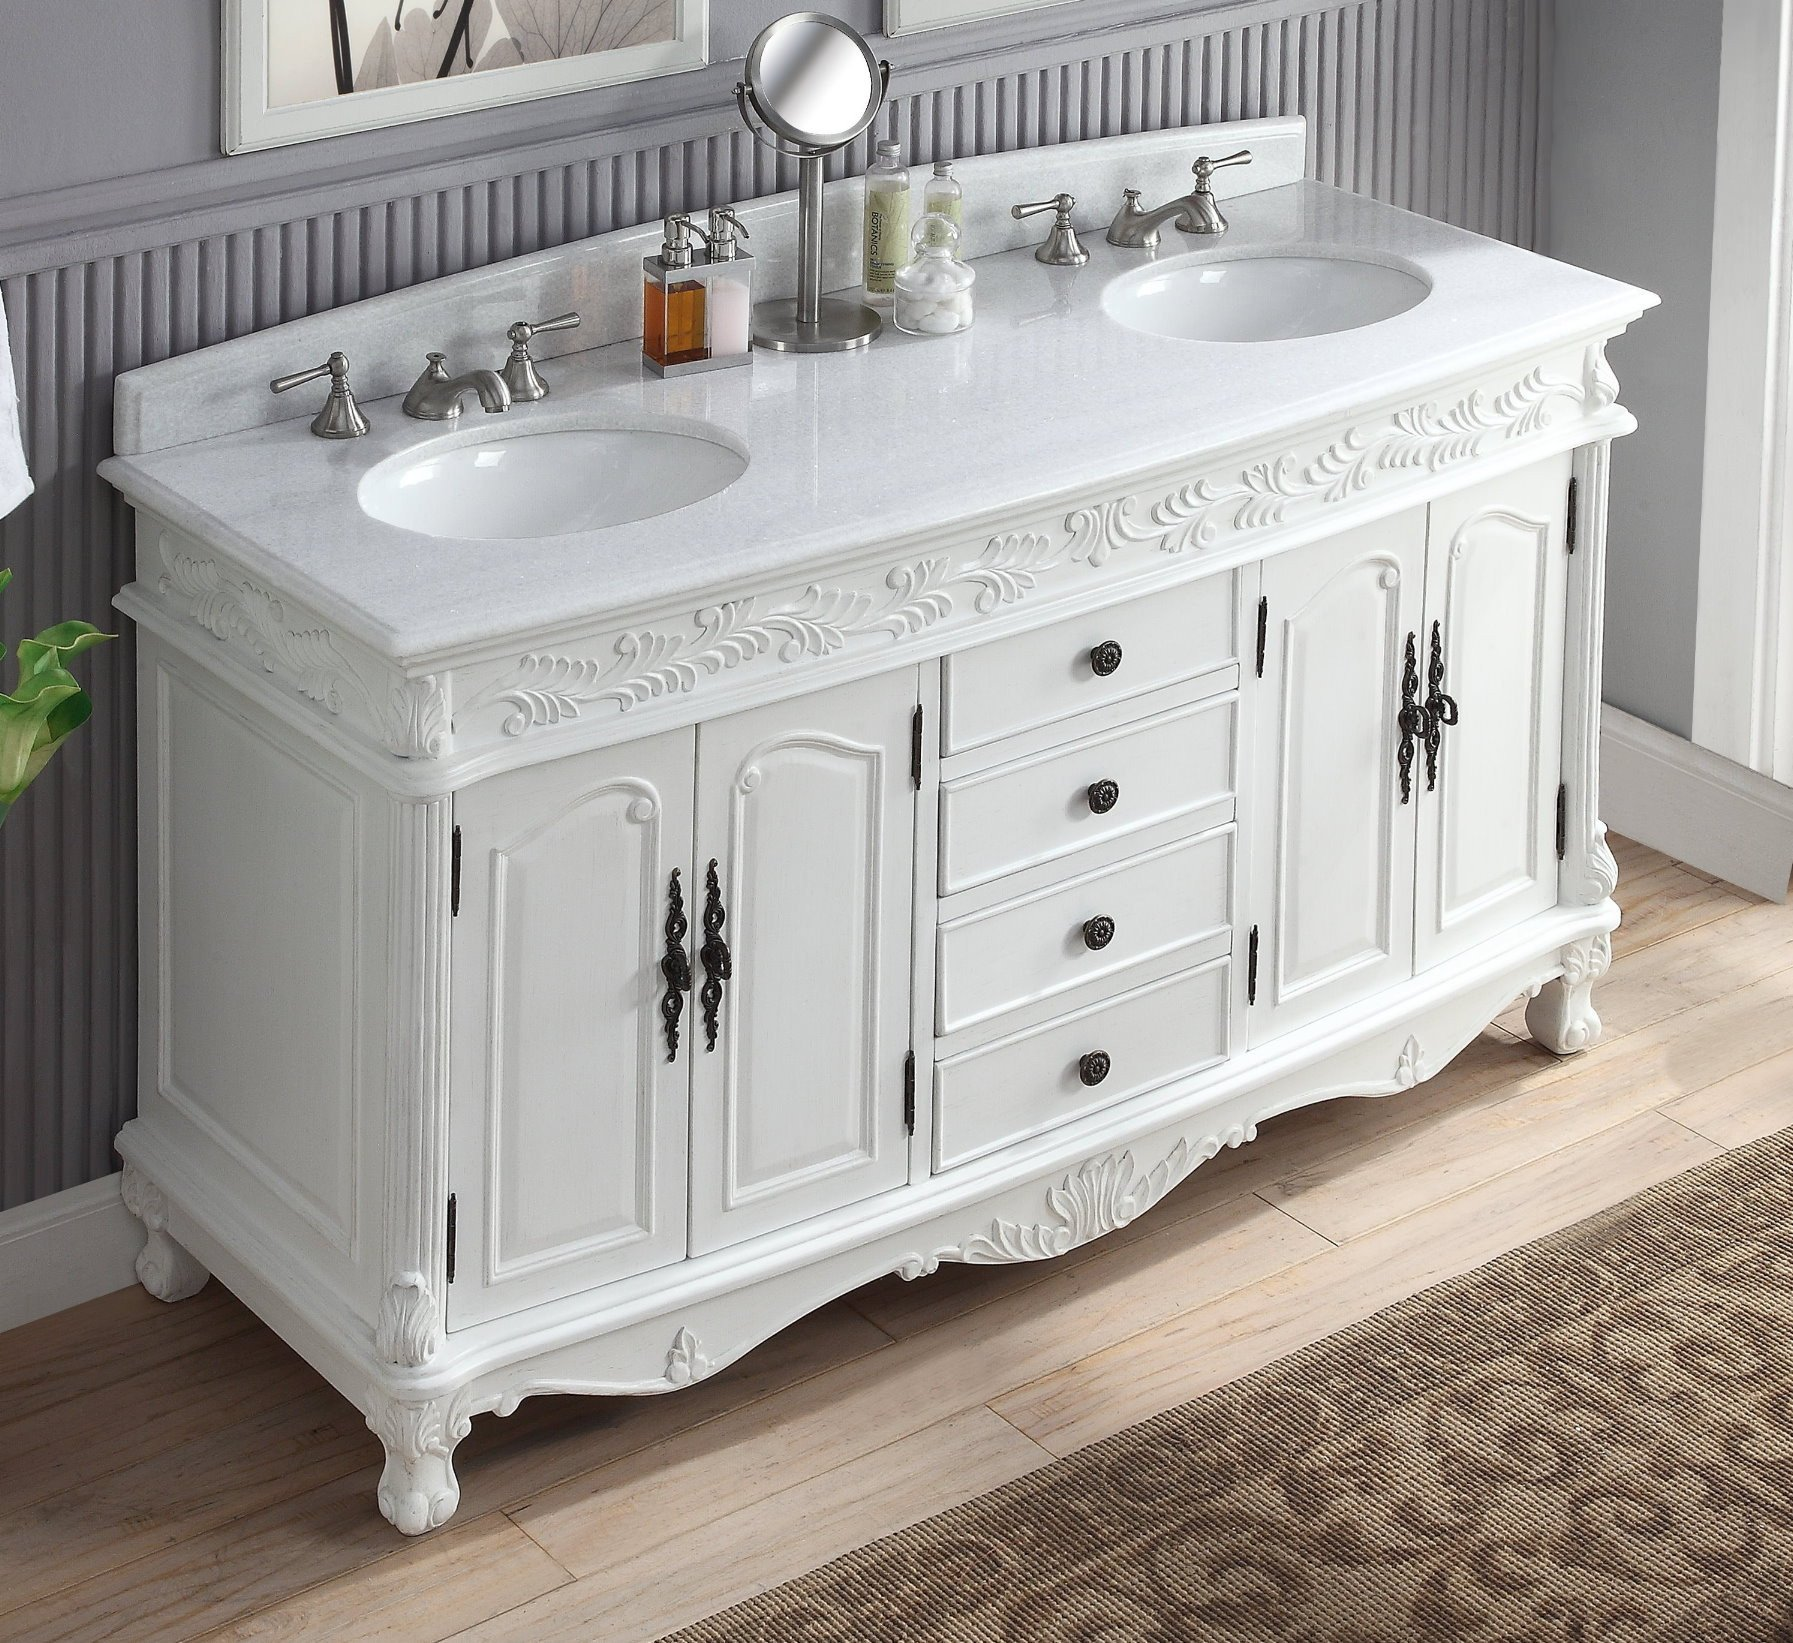 Chans Furniture Hf036xlw Aw Florence 63 Inch White Bathroom Double Sink Vanity Hf036xlw Aw